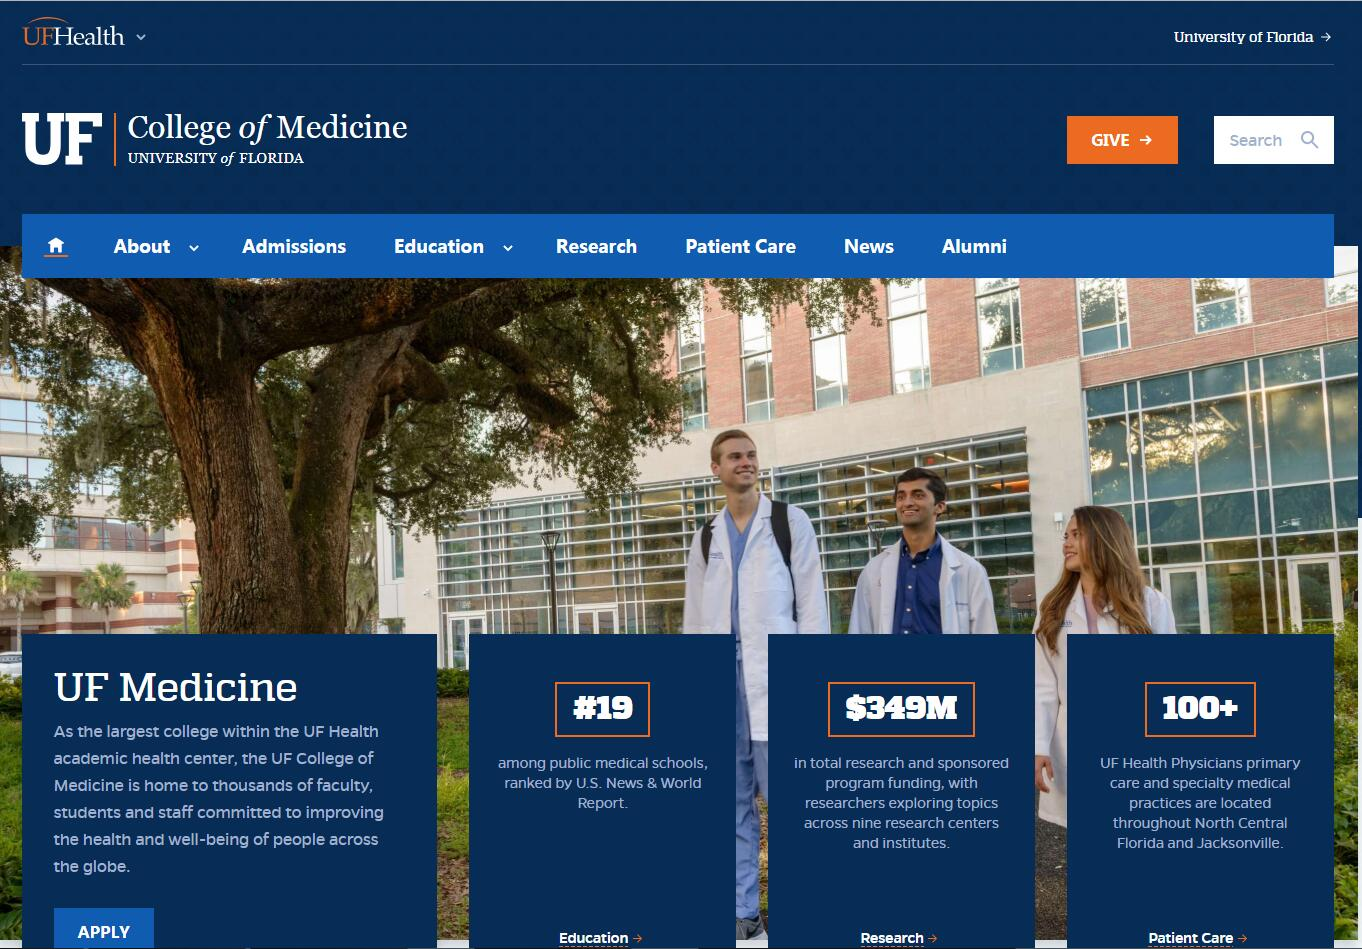 The College of Medicine at University of Florida